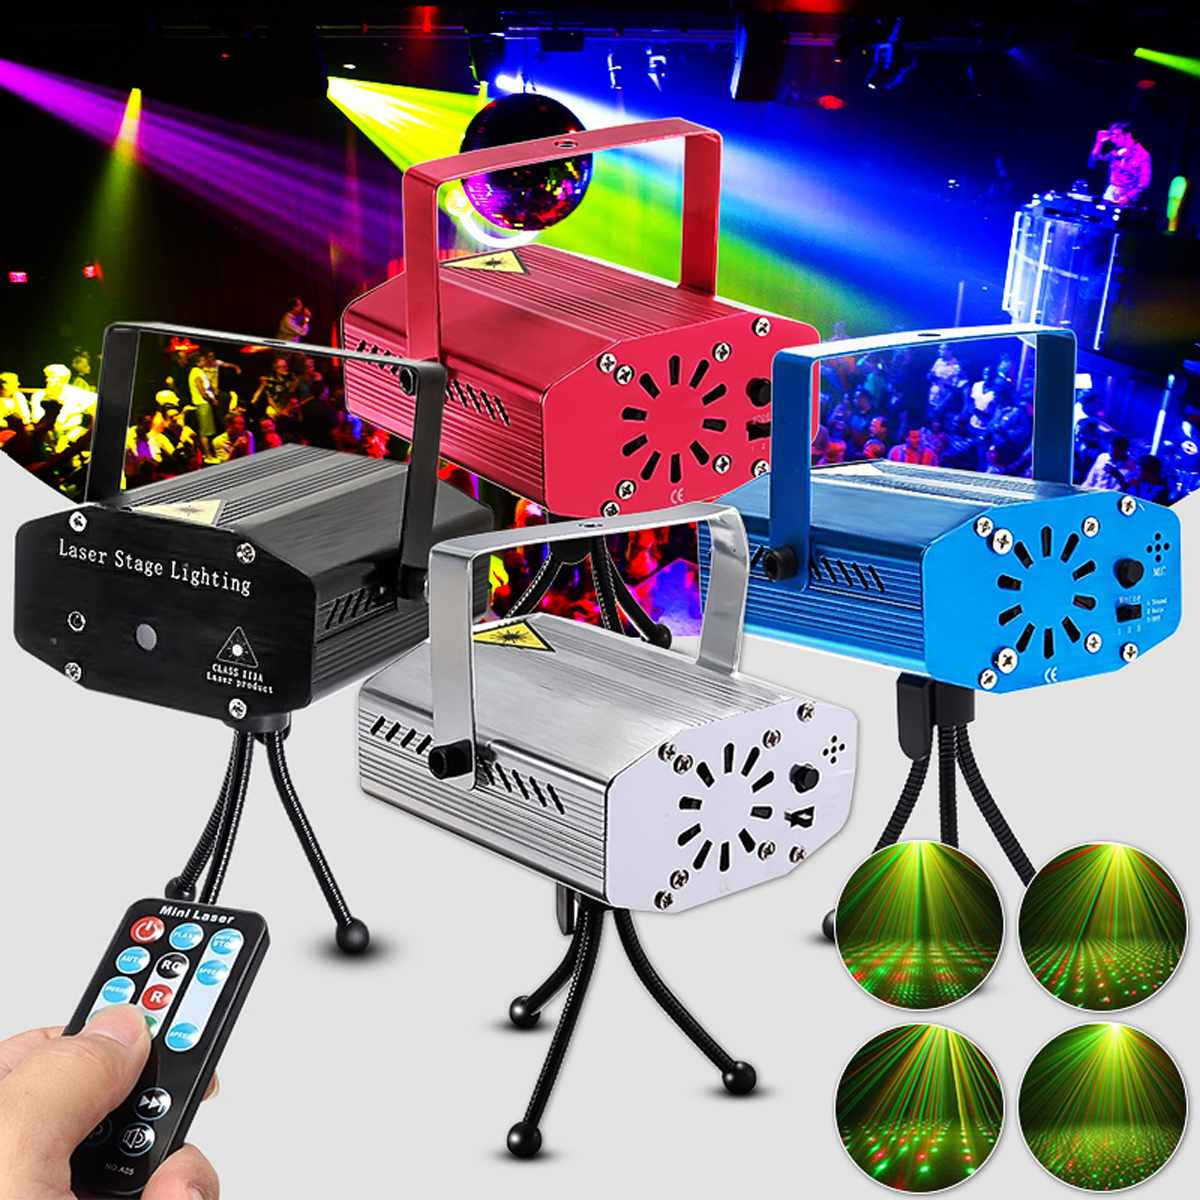 LED Lighting Stage Lights Wireless Mini Laser Projector Stage Lights Party Lighting Projector With Remote Control For DJ Disco